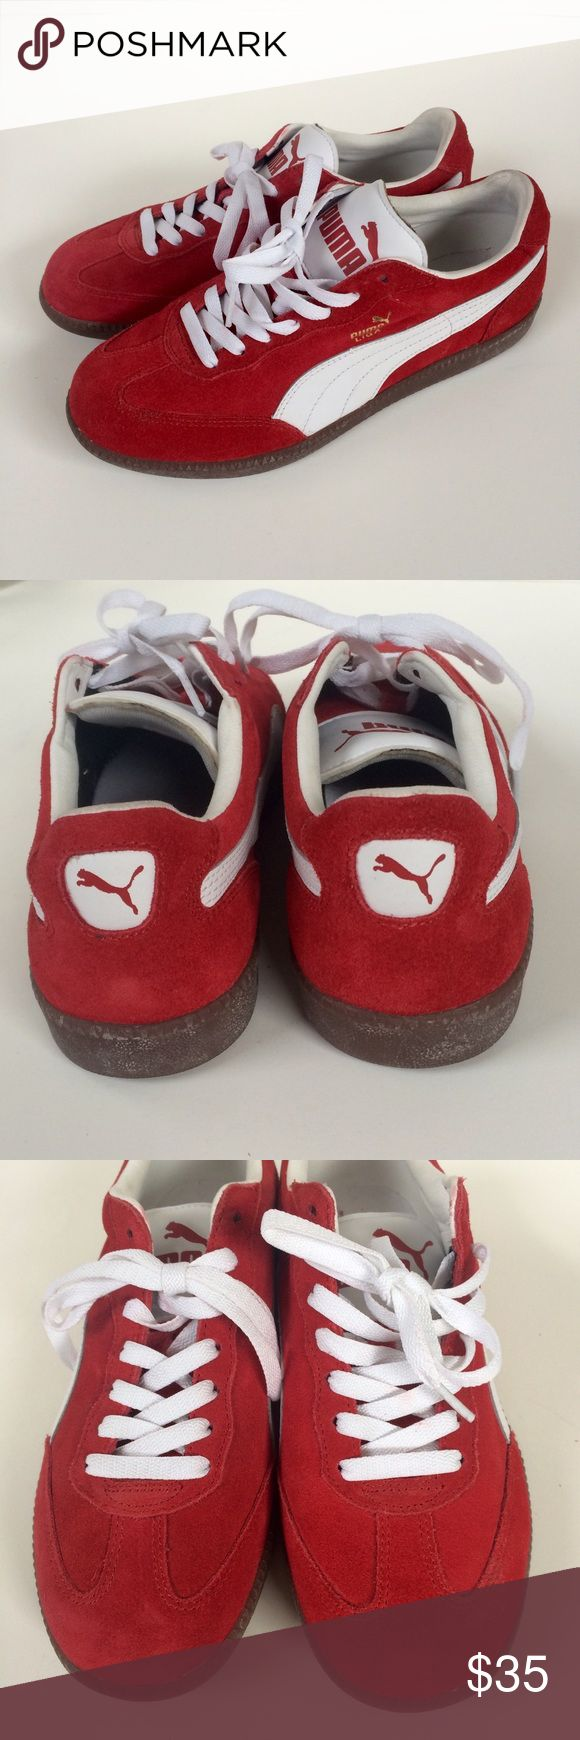 Puma Liga Red and White Suede Shoes Size 8.5 NWOT Puma Ladies Shoes in 8.5. Red suede. Puma Shoes Sneakers